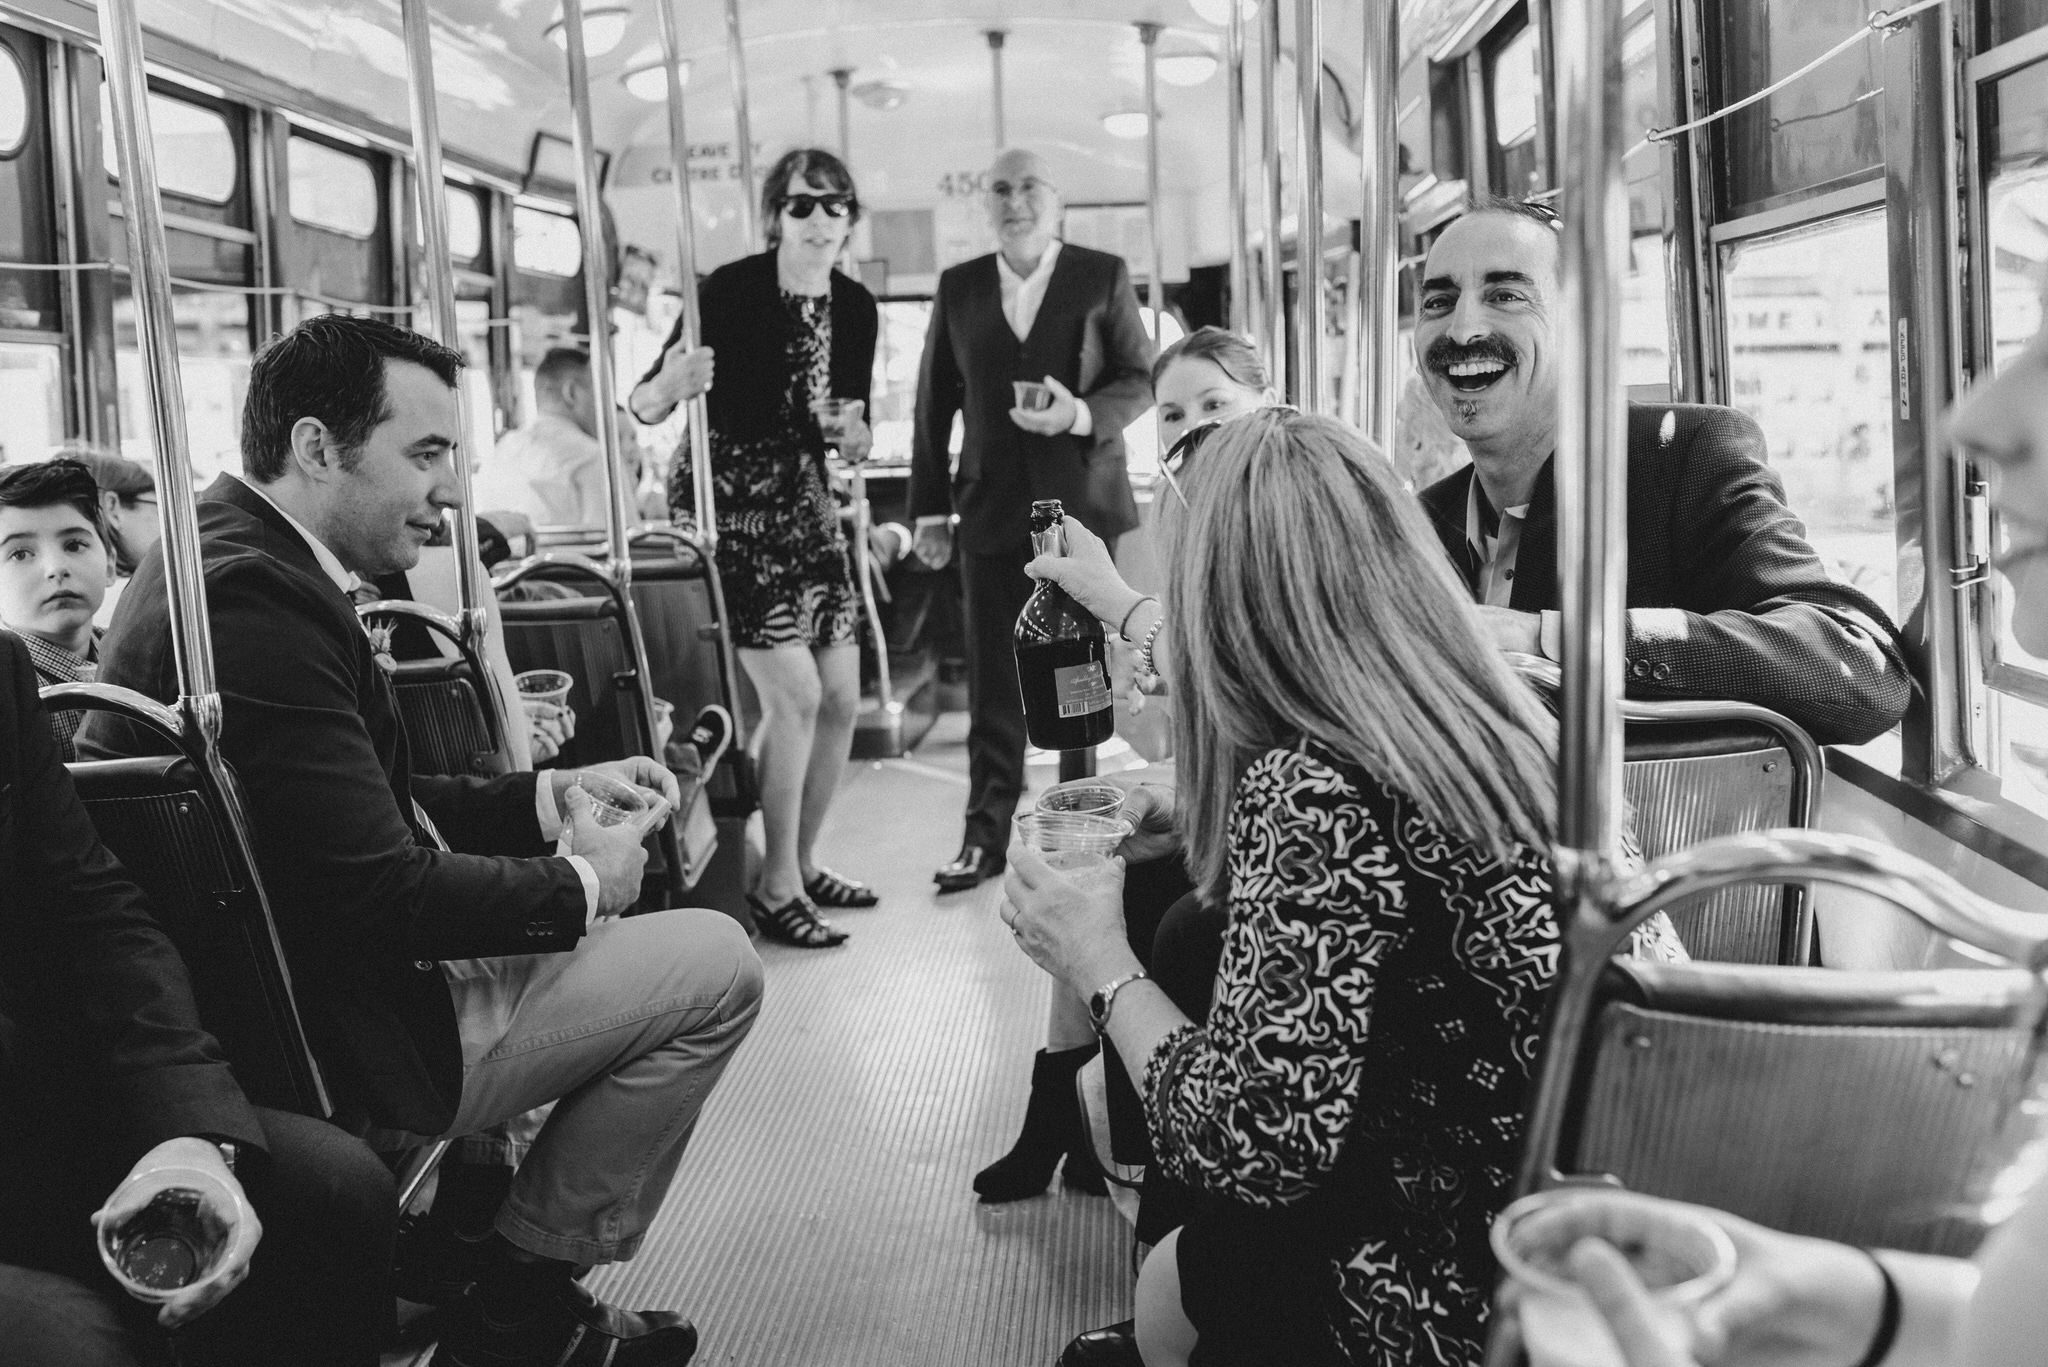 The guests pass around a bottle of bubbly to celebrate their Vintage Toronto Streetcar Wedding Ceremony